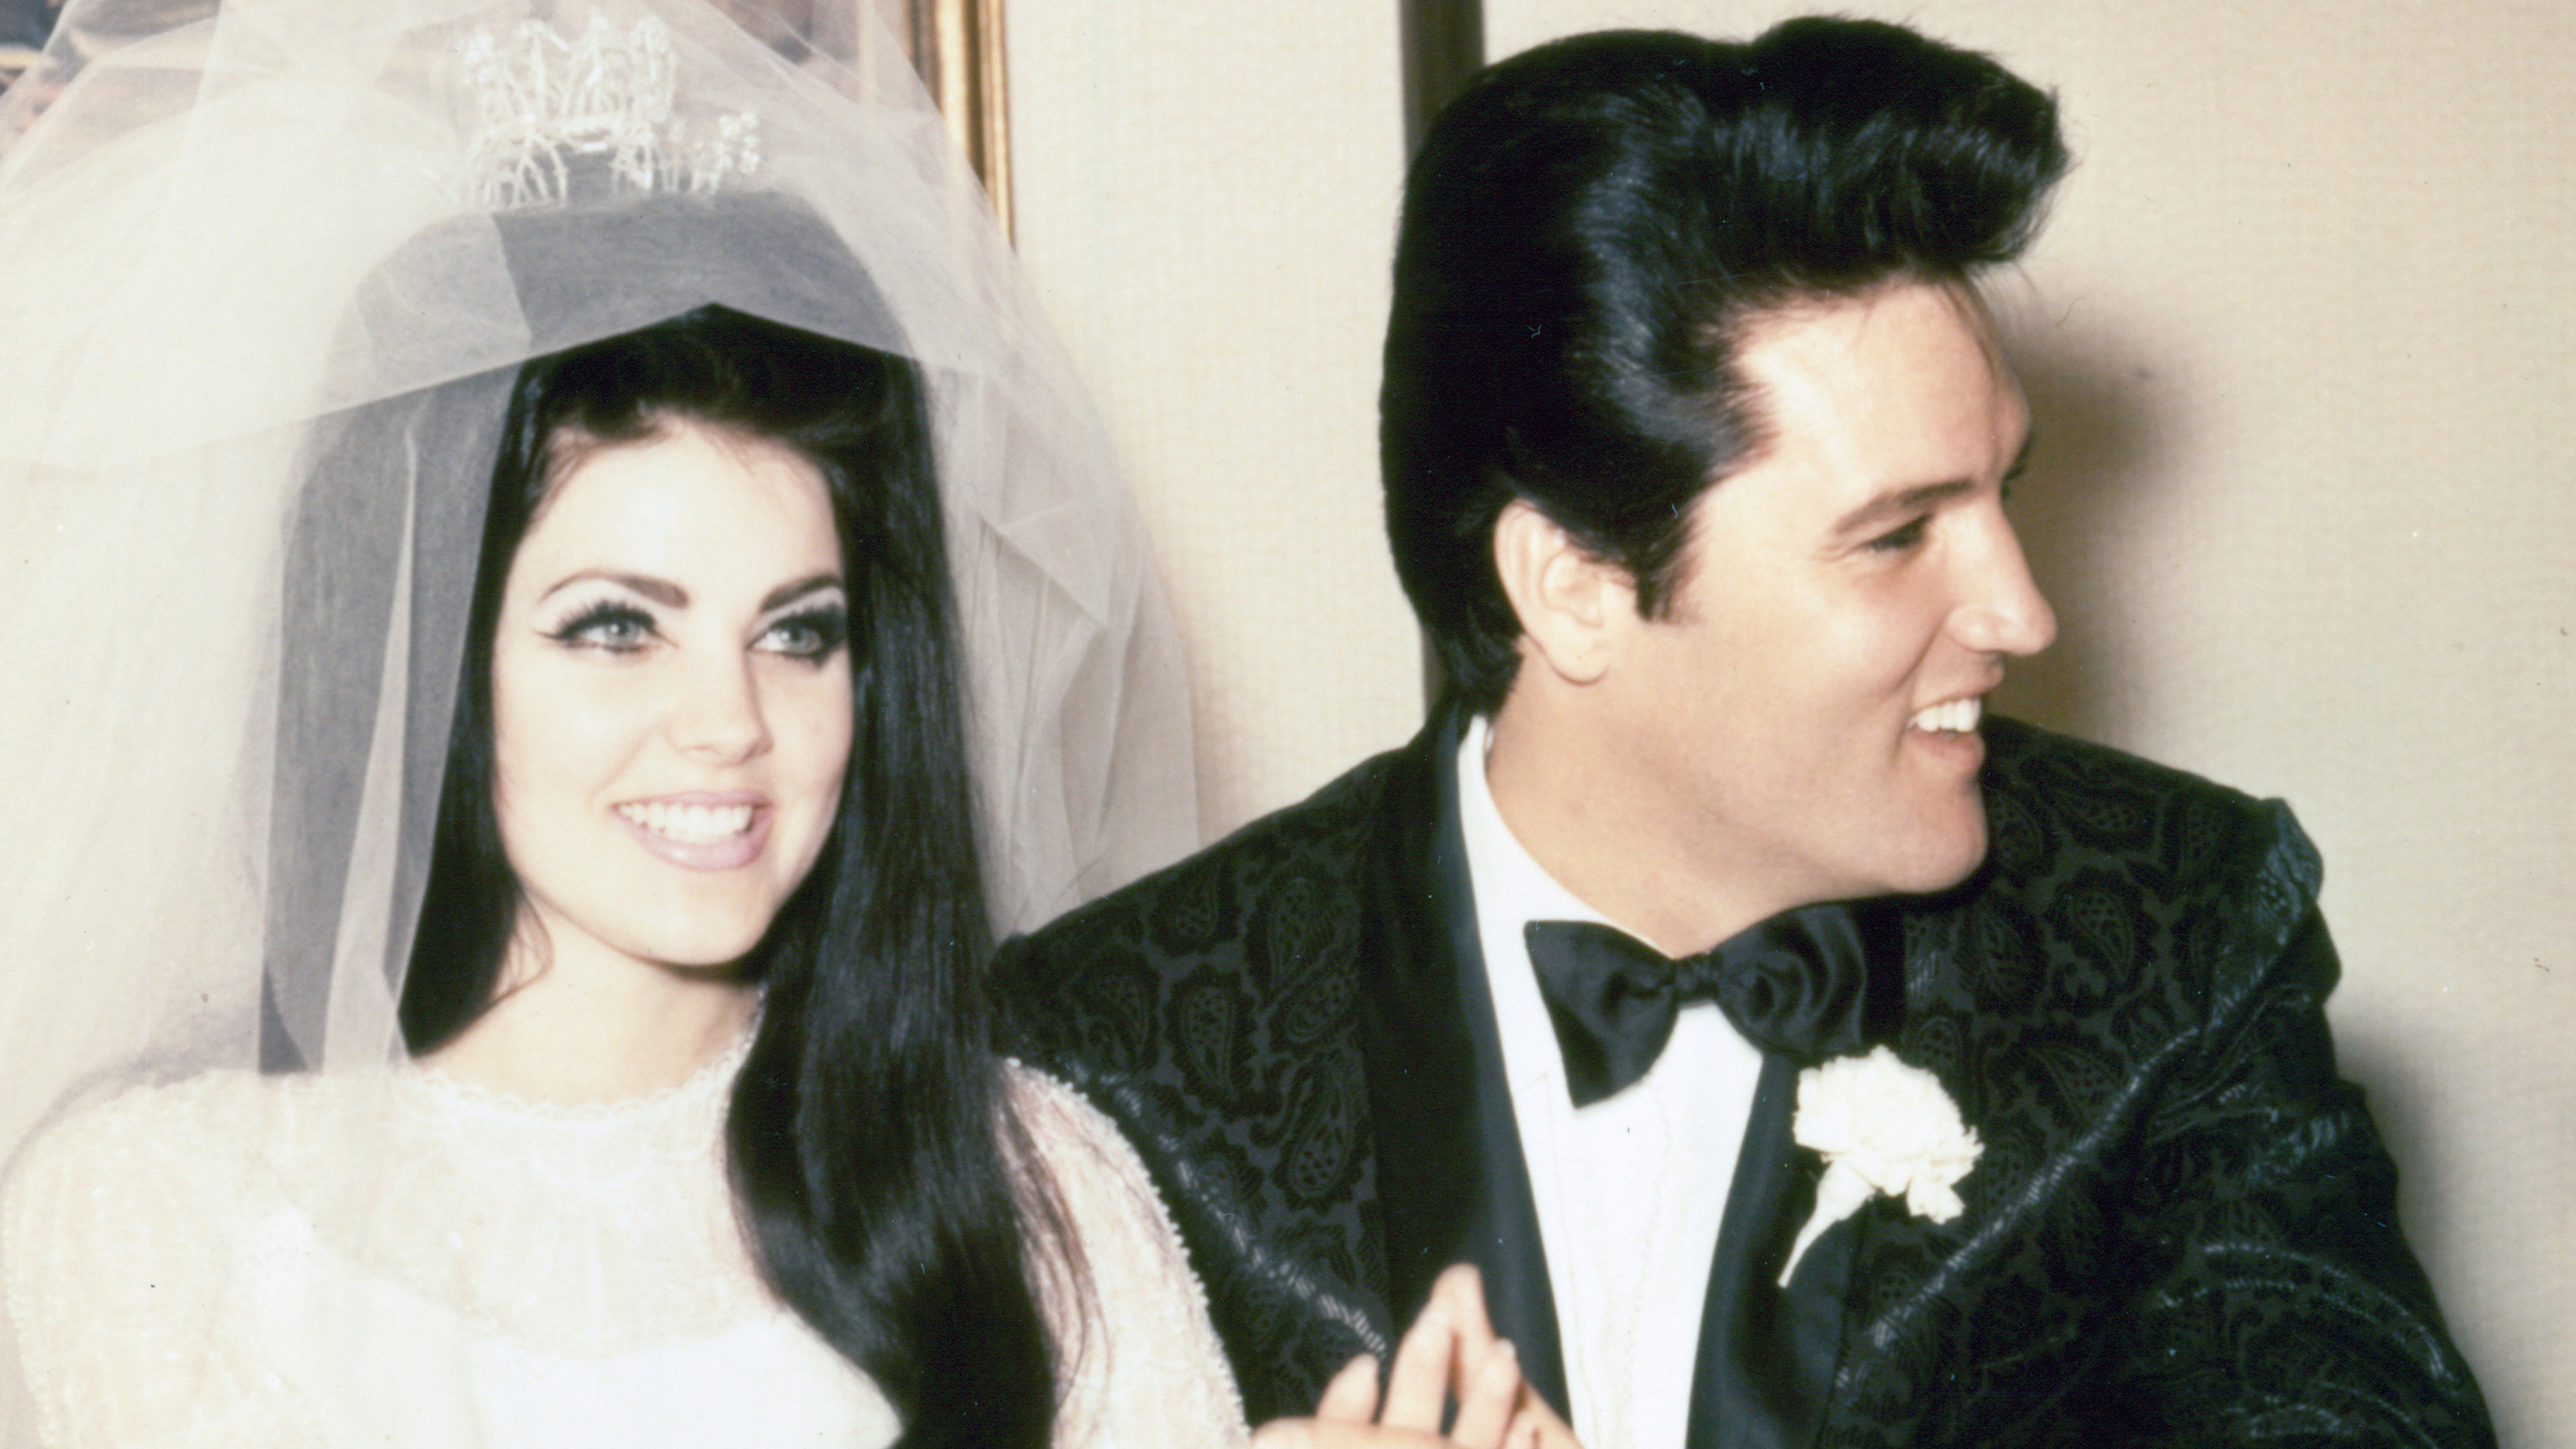 Who is priscilla presley married to now